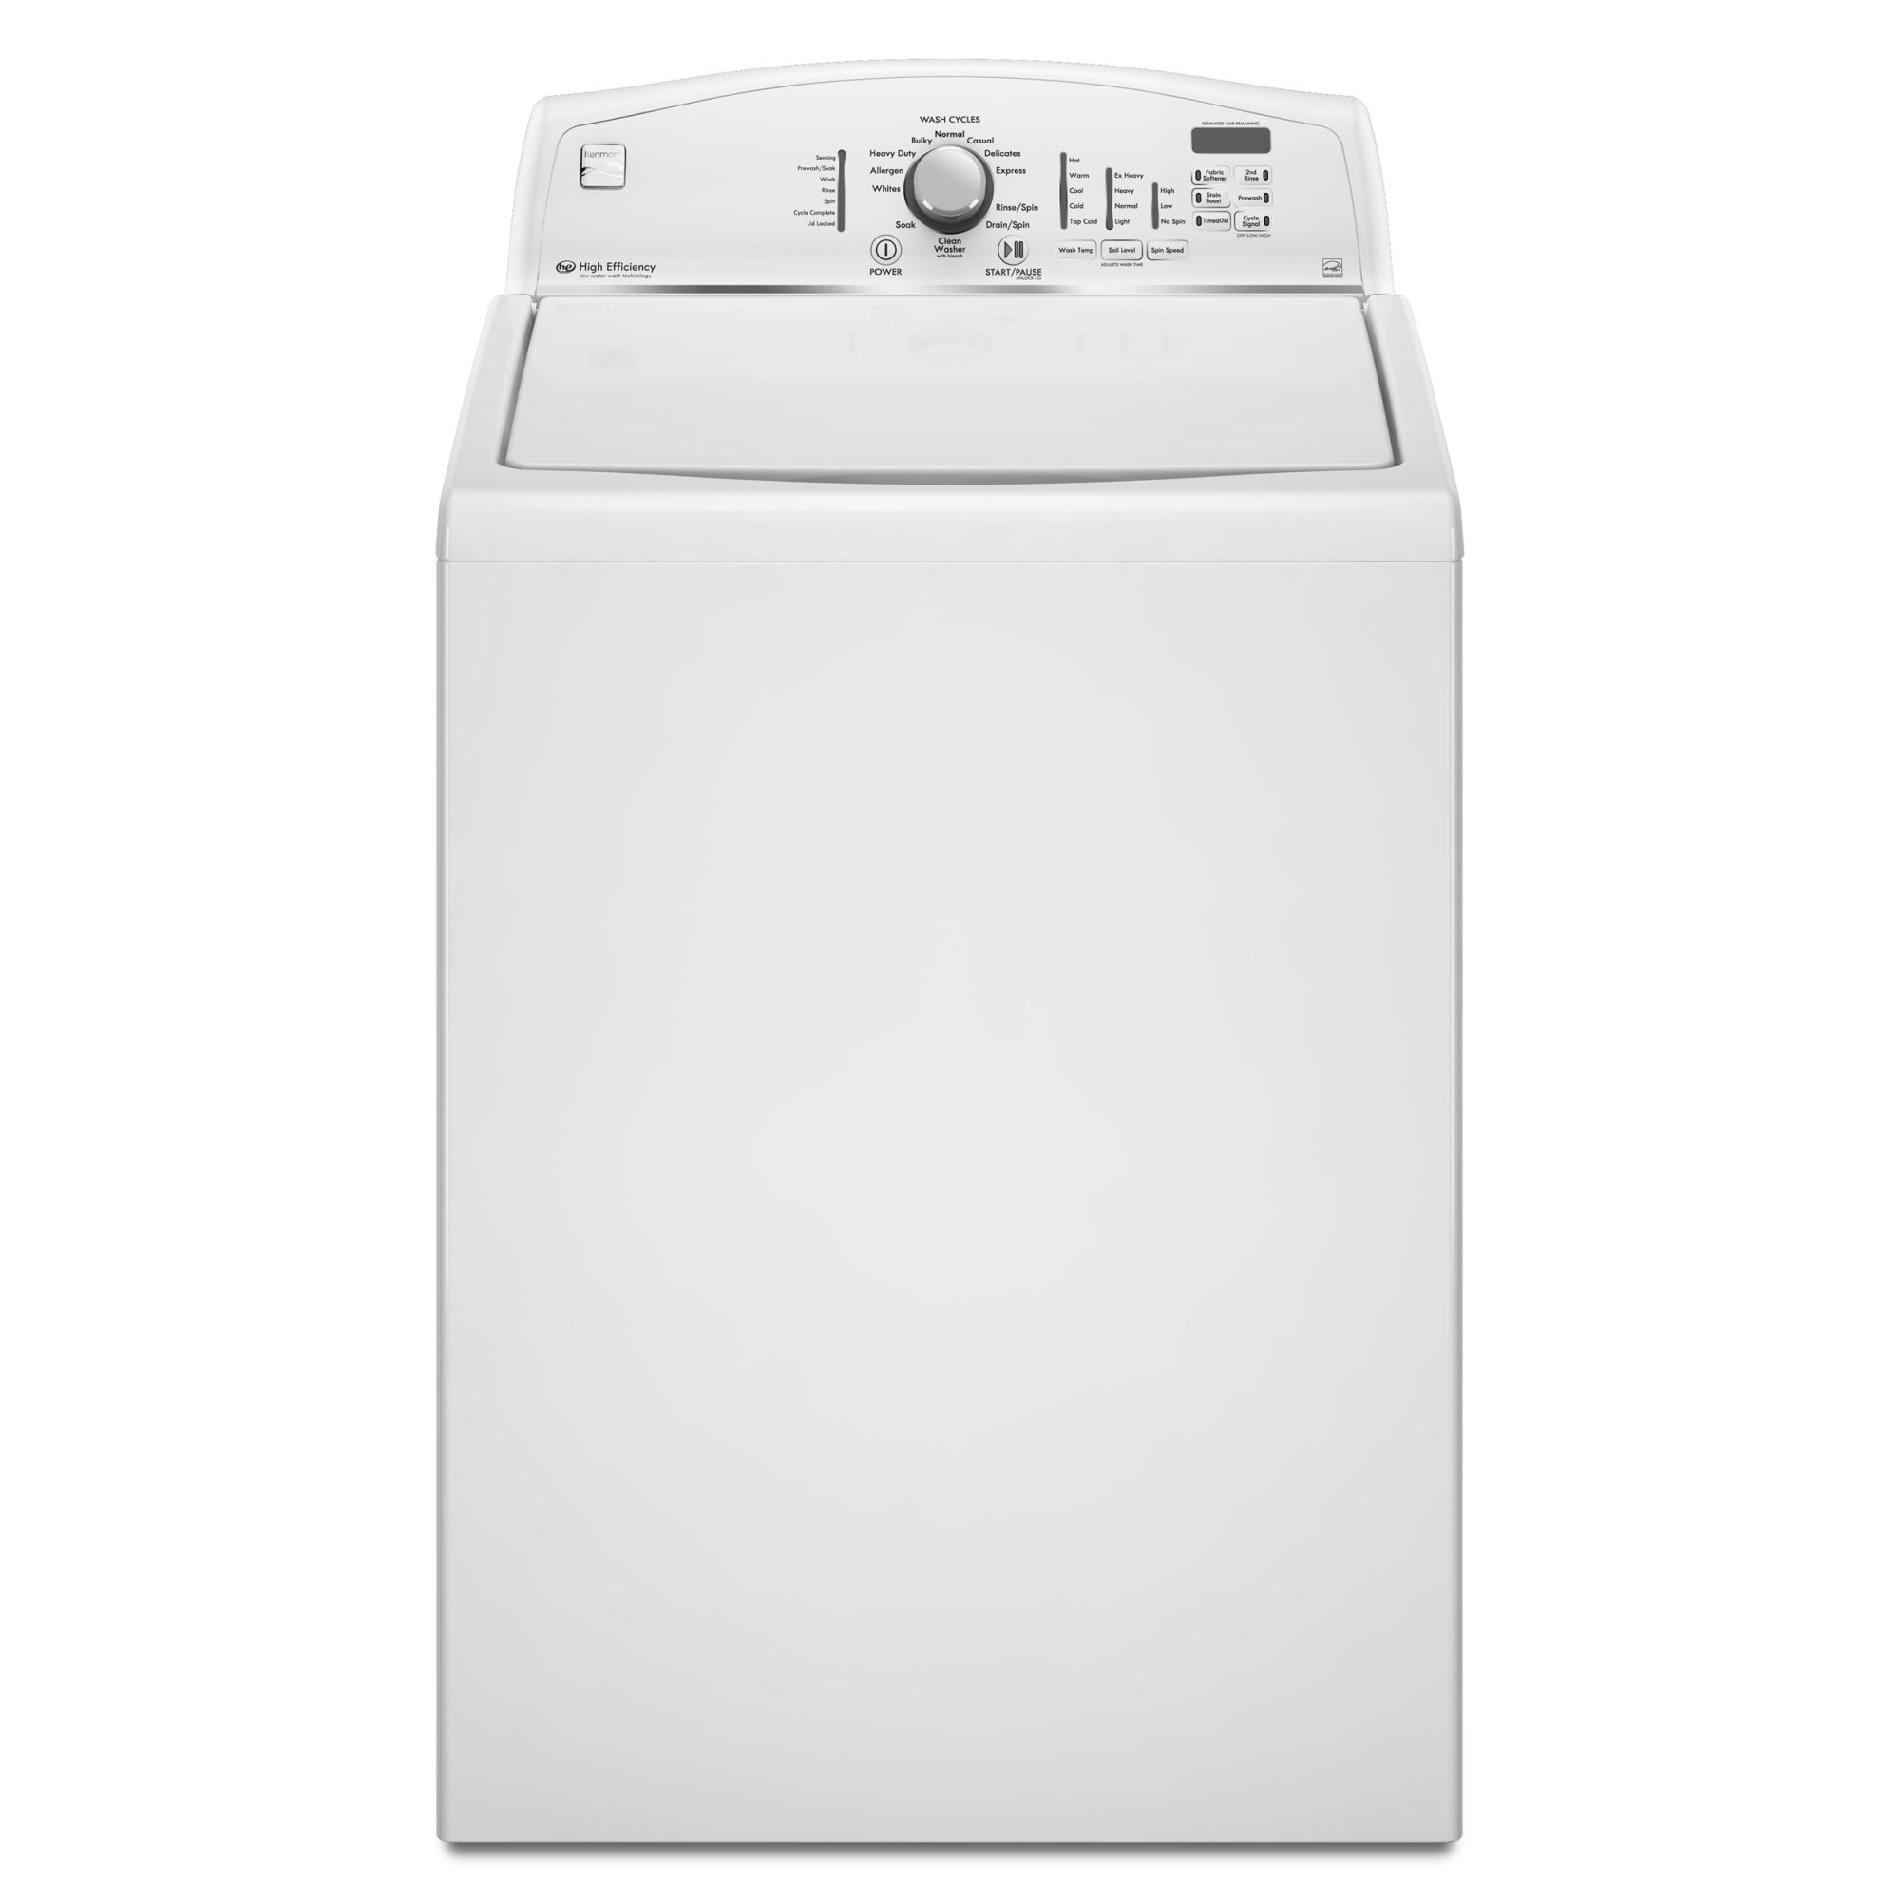 3.6 cu. ft. High-Efficiency Top-Load Washer -